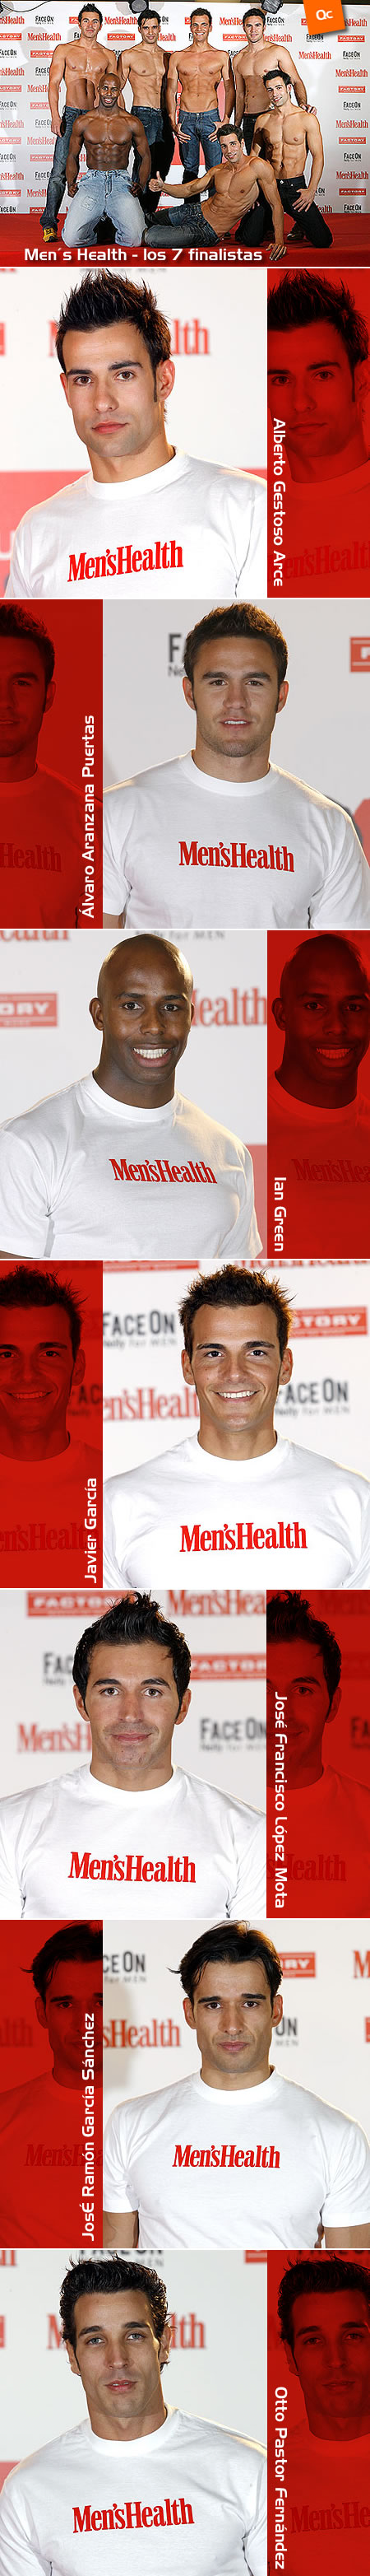 Los 7 Finalistas de Men's Health